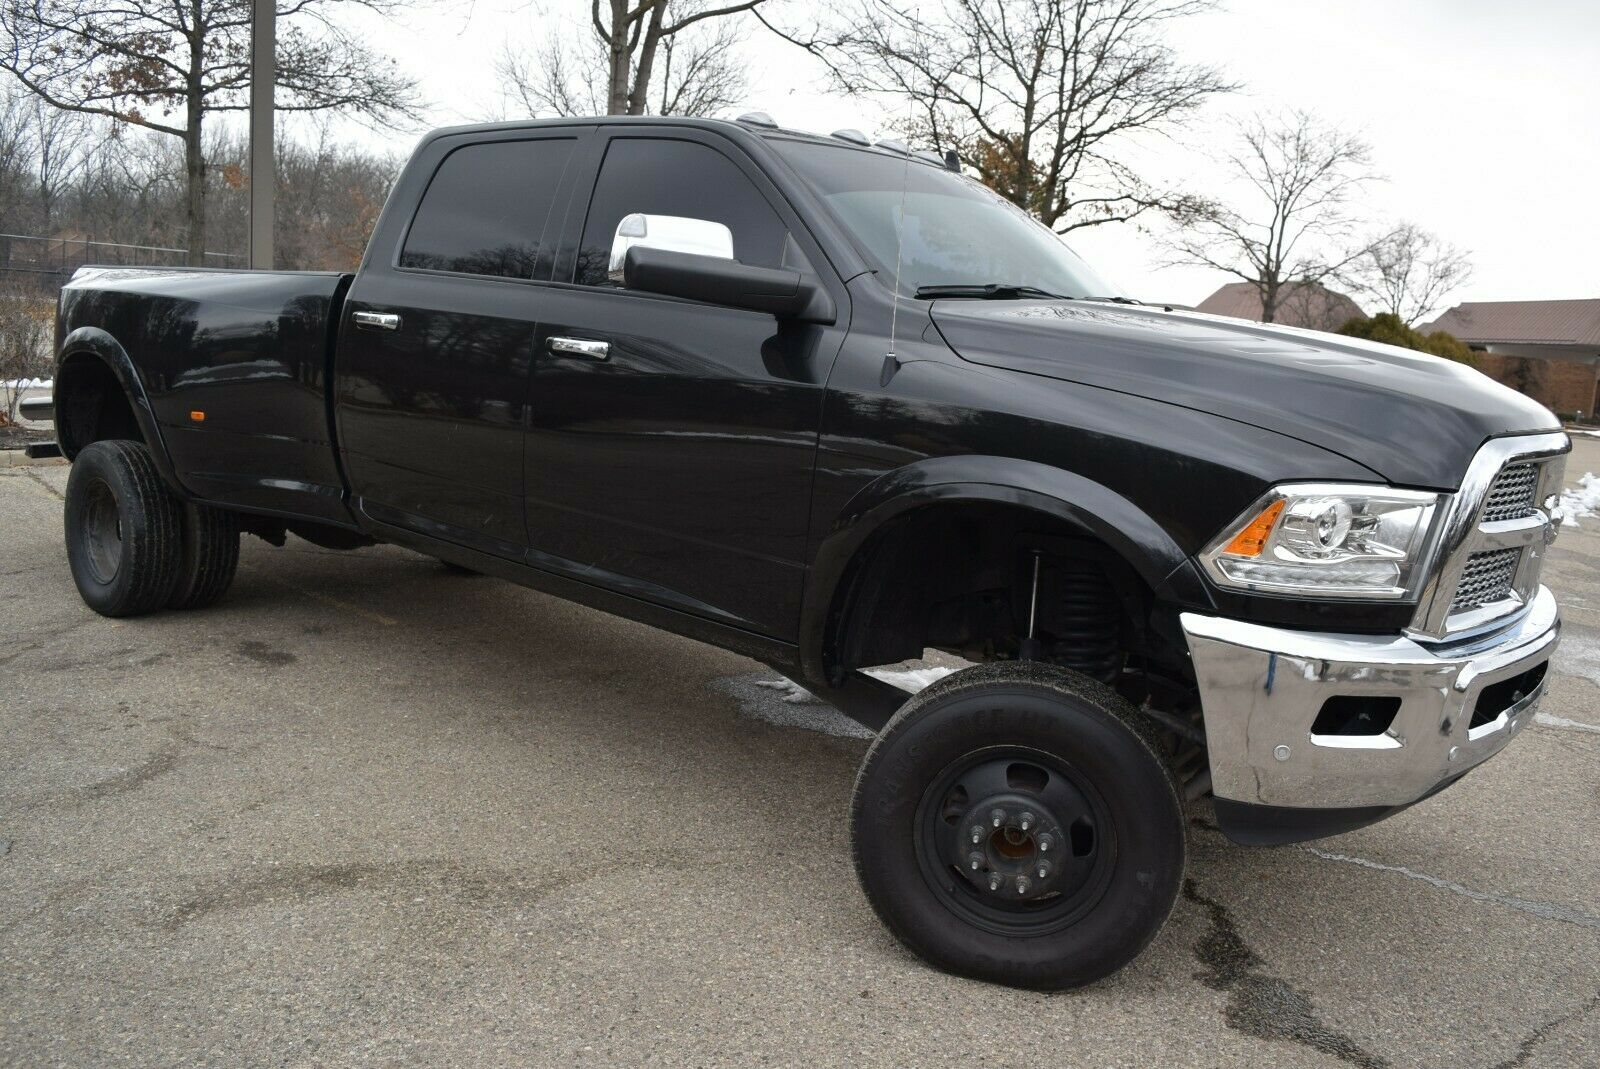 one of a kind 2018 Dodge Ram 3500 Laramie Edition lifted